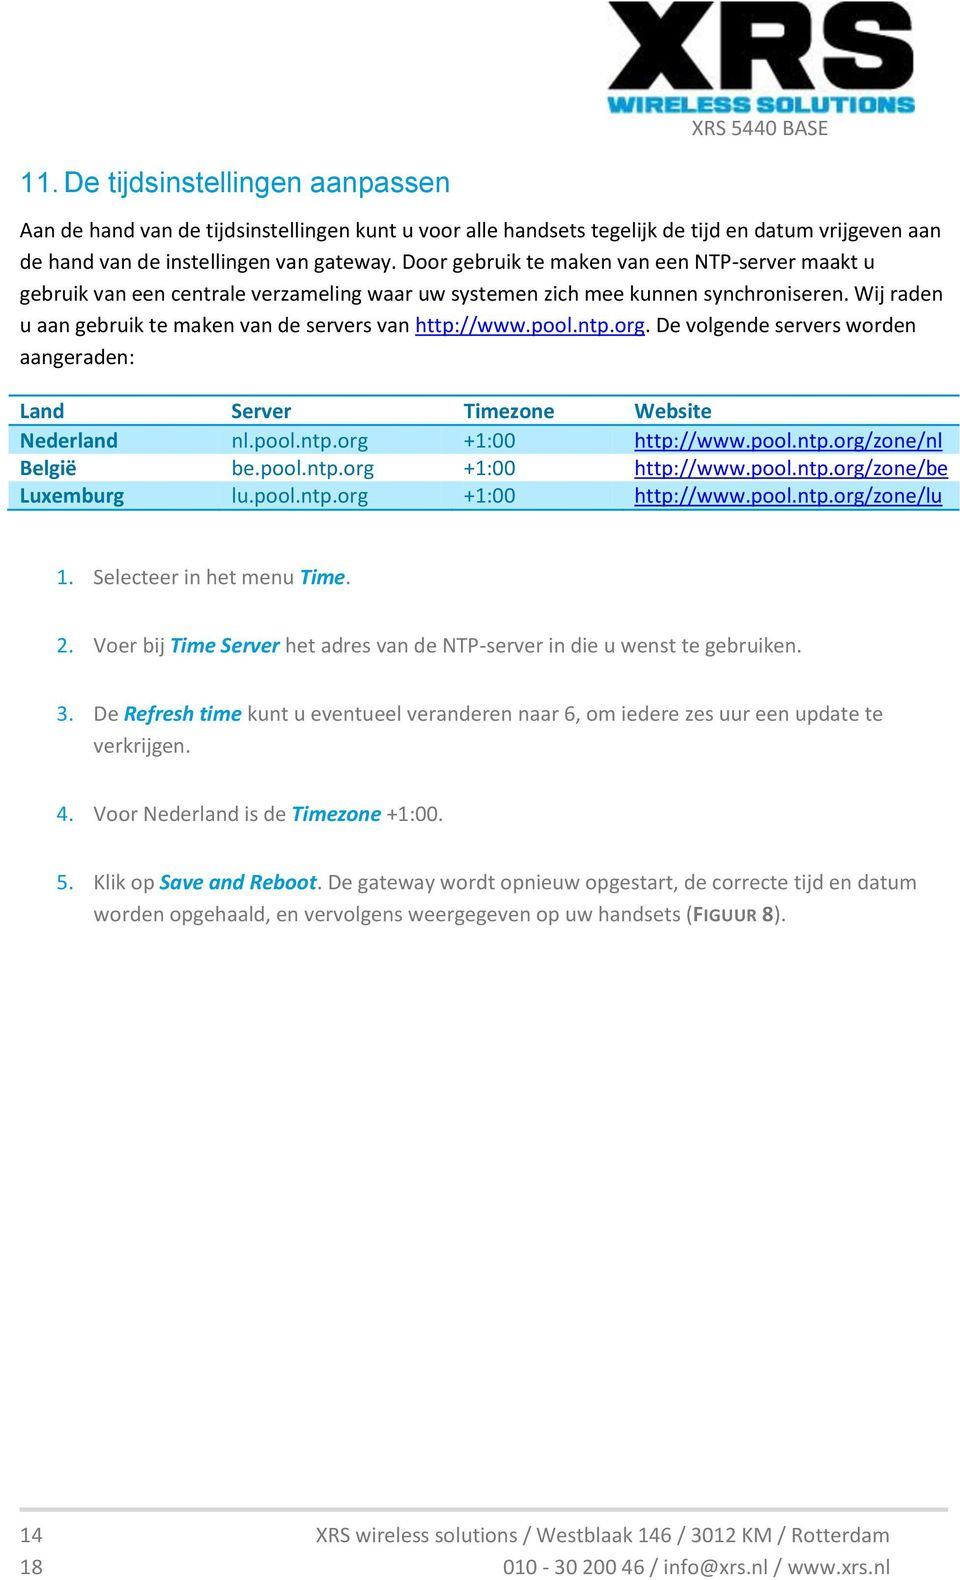 pool.ntp.org. De volgende servers worden aangeraden: Land Server Timezone Website Nederland nl.pool.ntp.org +1:00 http://www.pool.ntp.org/zone/nl België be.pool.ntp.org +1:00 http://www.pool.ntp.org/zone/be Luxemburg lu.